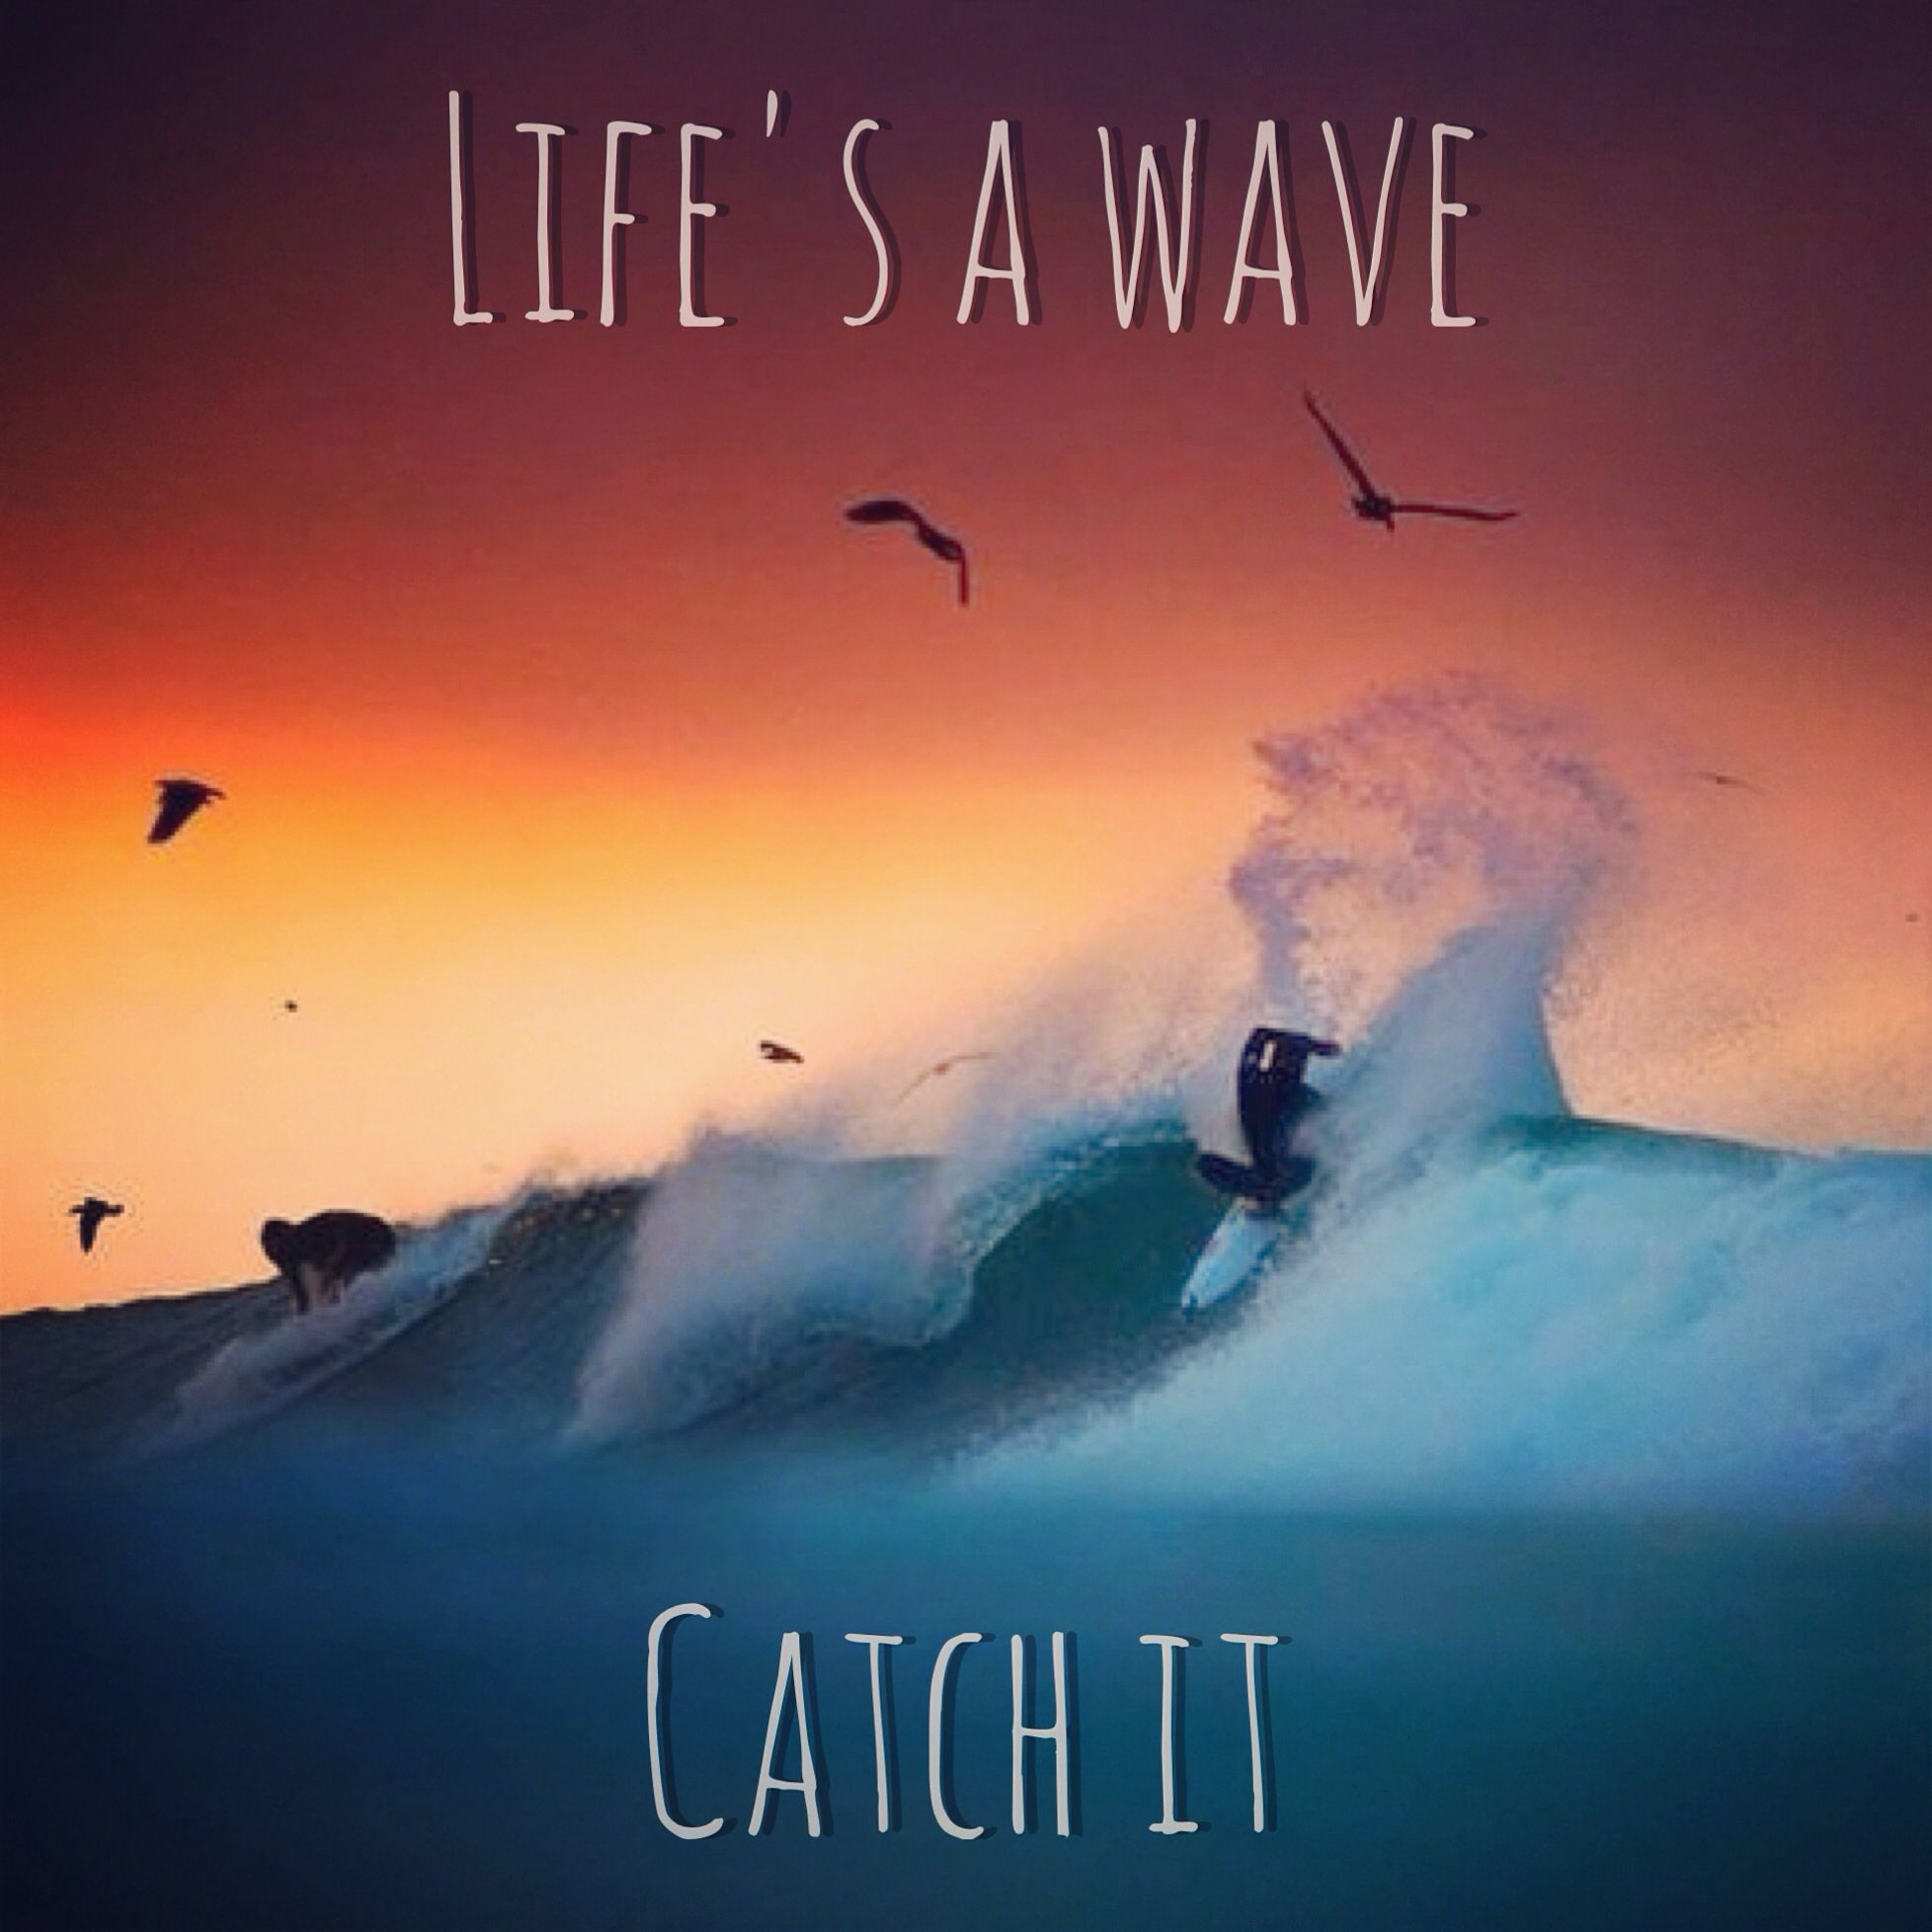 Life is a wave~Catch it #quote #surfing #waves #ocean # ...